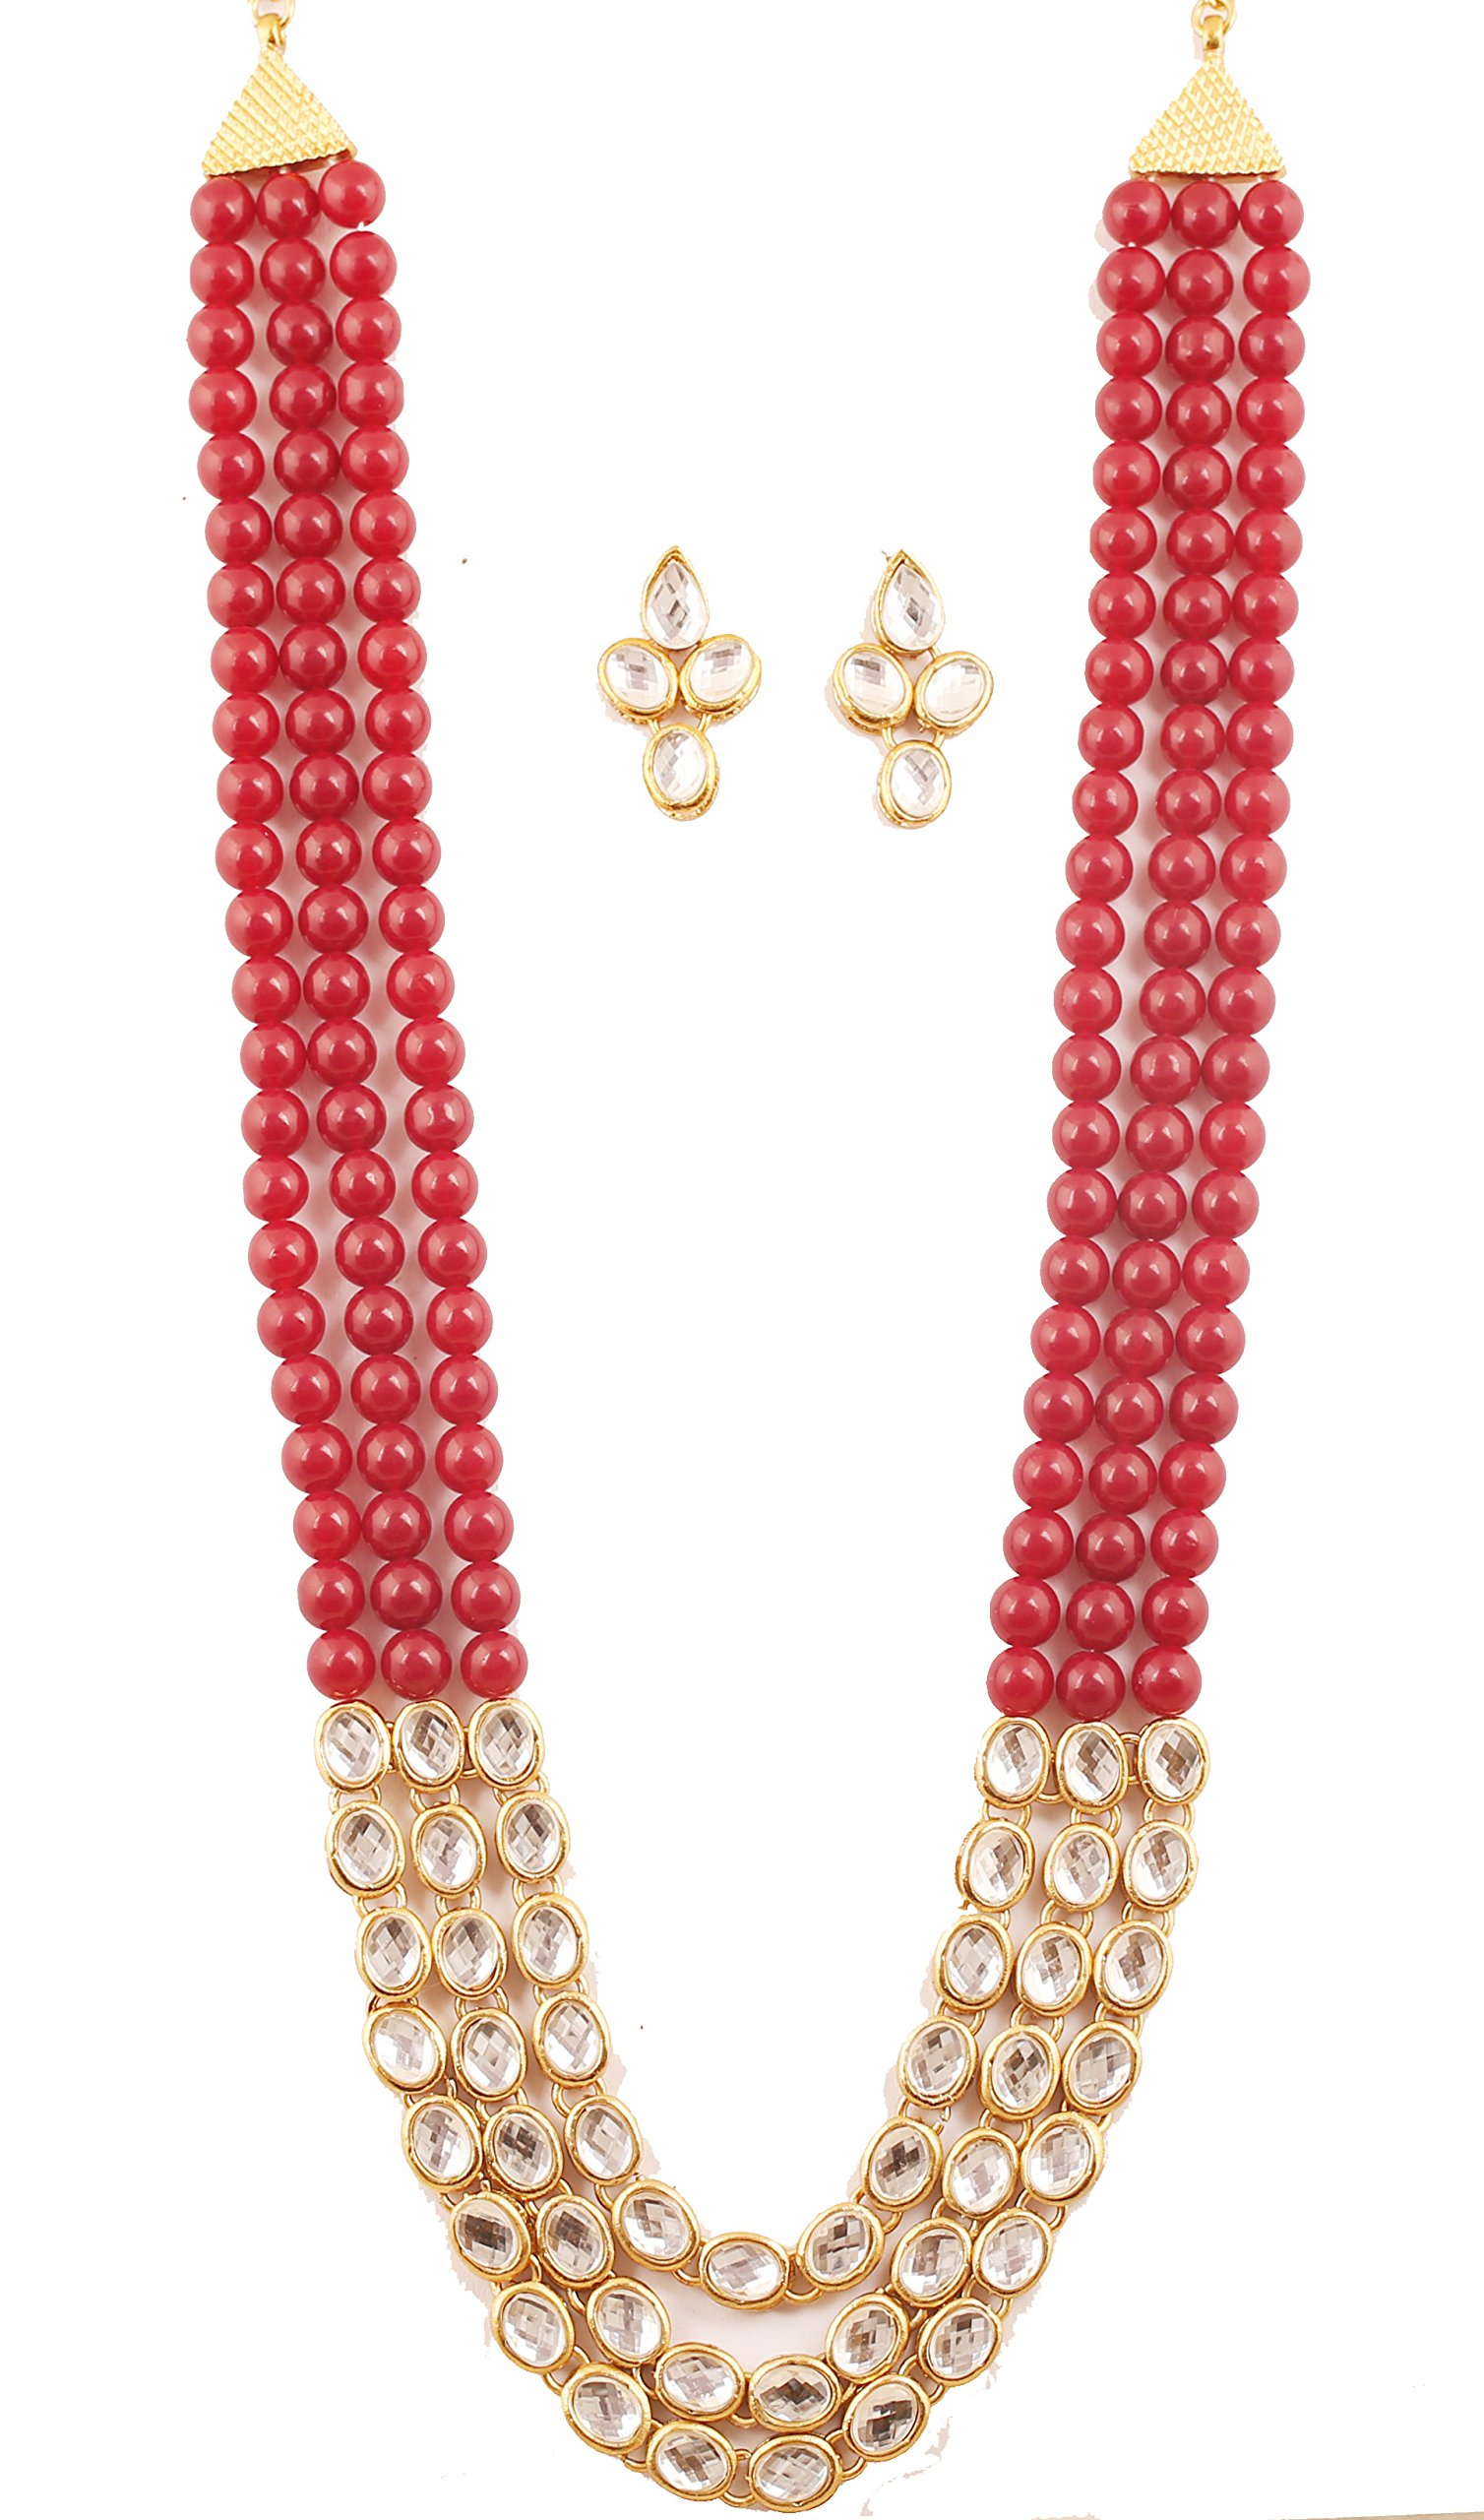 NEW! Touchstone ''Contemporary Kundan Collection'' Indian Bollywood Majestic Mughal Craftsmanship Kundan Look Identical Red Onyx Triple Line Strings Long Wedding Designer Jewelry Necklace Set In Antique Gold Tone For Women.